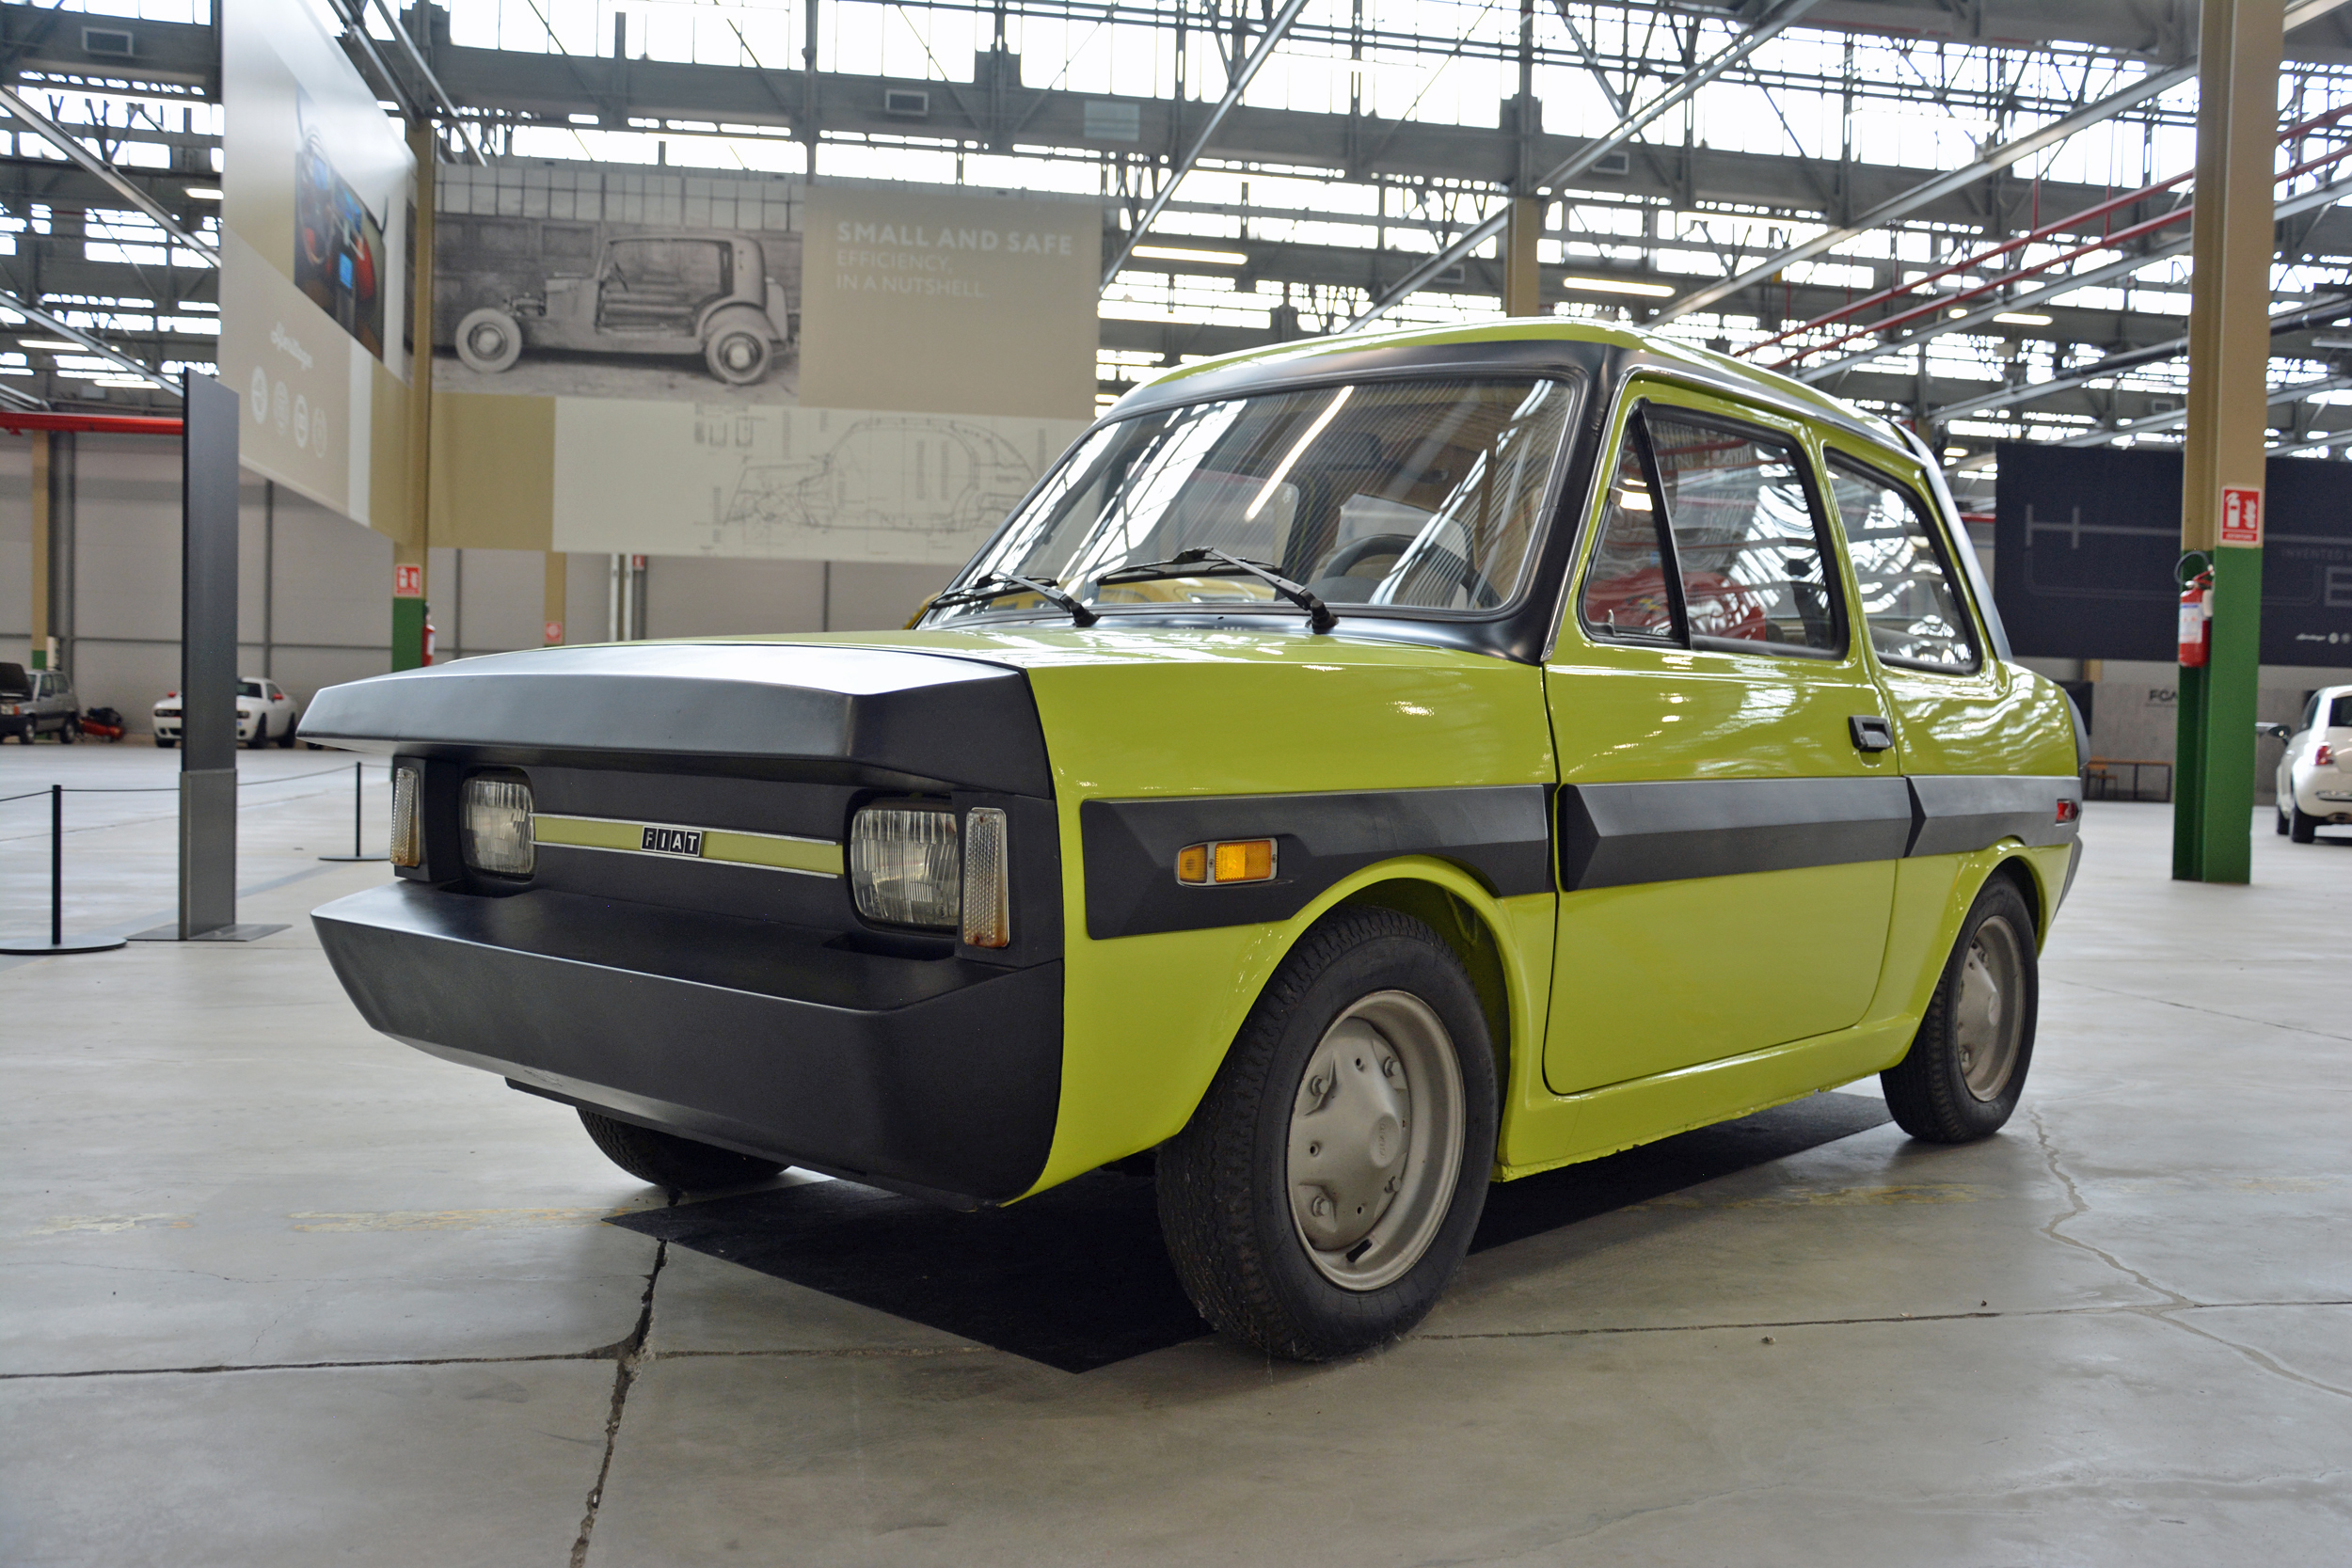 1972 fiat esv 1500 front three-quarter